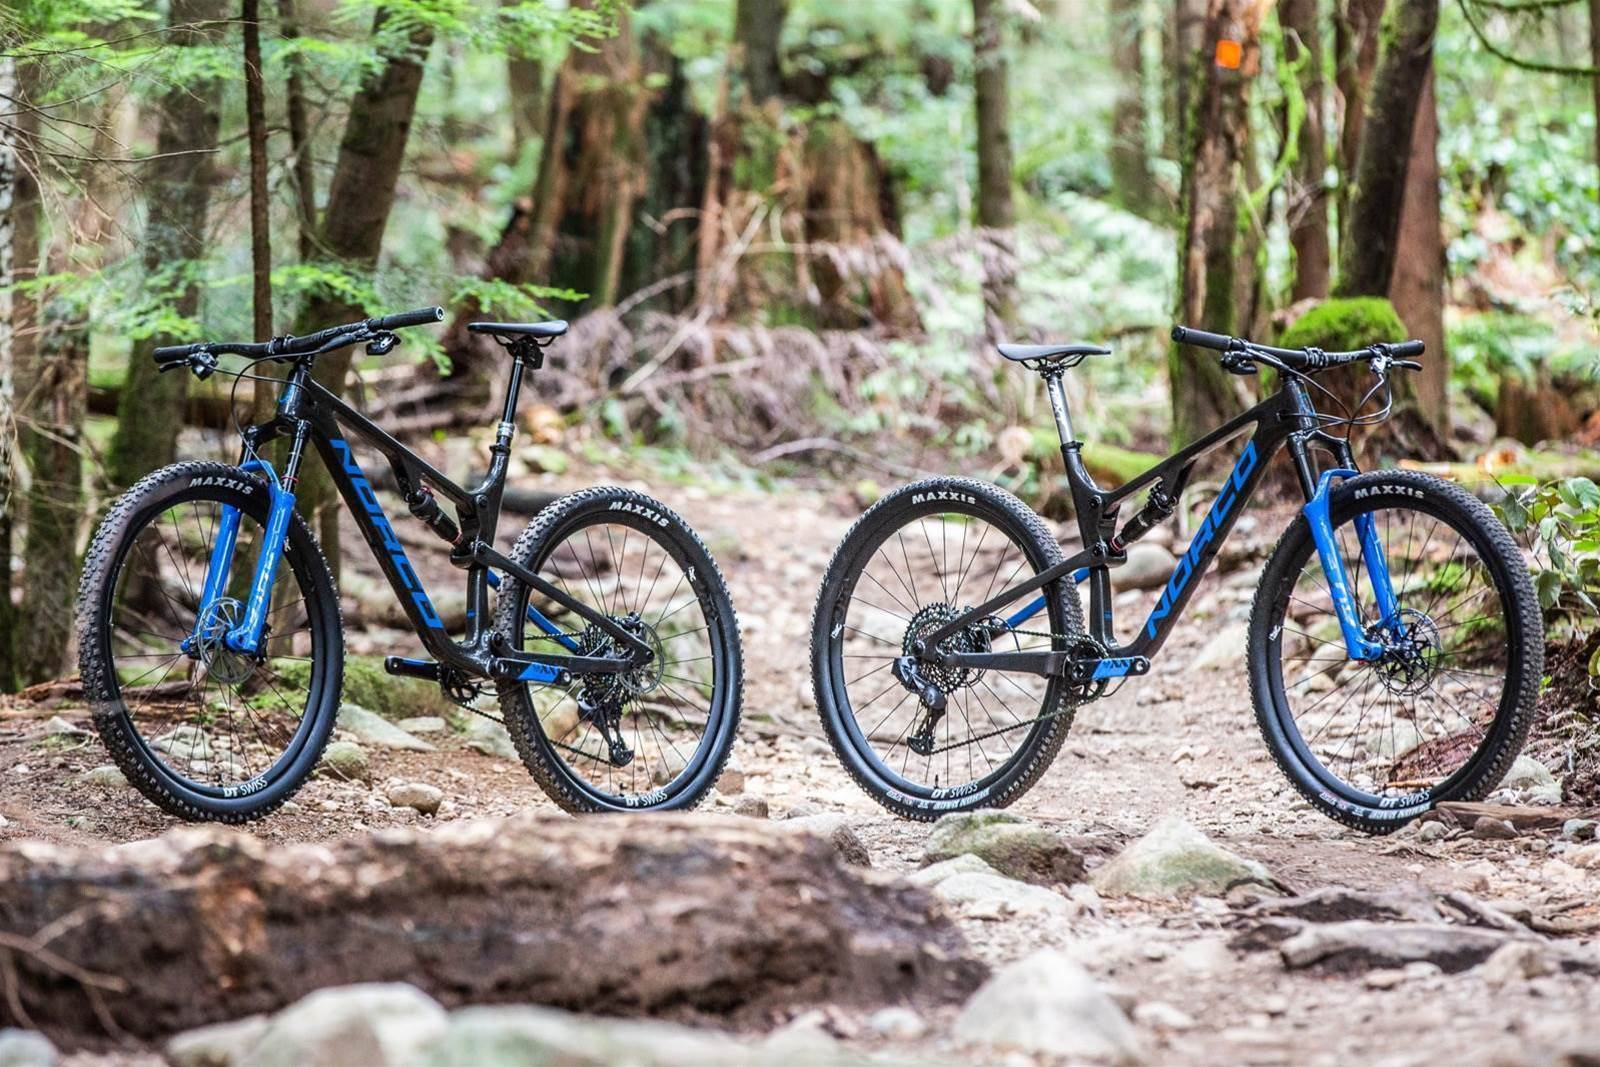 The all-new Norco Revolver